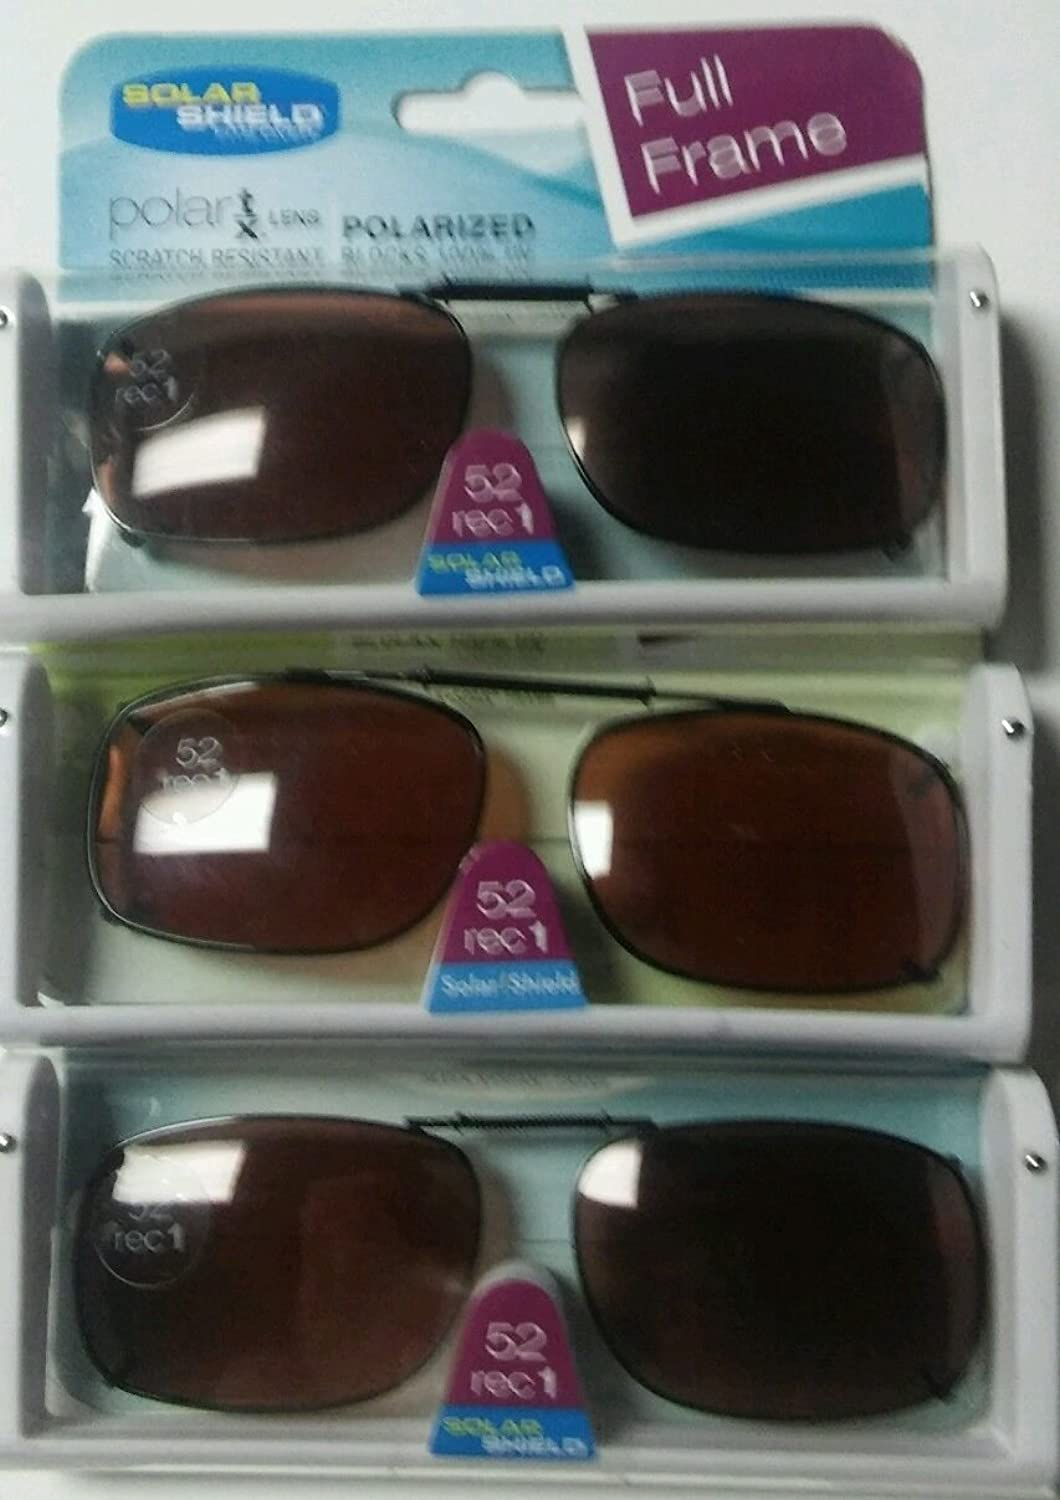 SET OF 3- SOLAR SHIELD 52 REC 1 Brown Full Frame POLARIZED CLIP ON SUNGLASS SCRATCH RESISTANT LENSES NEW